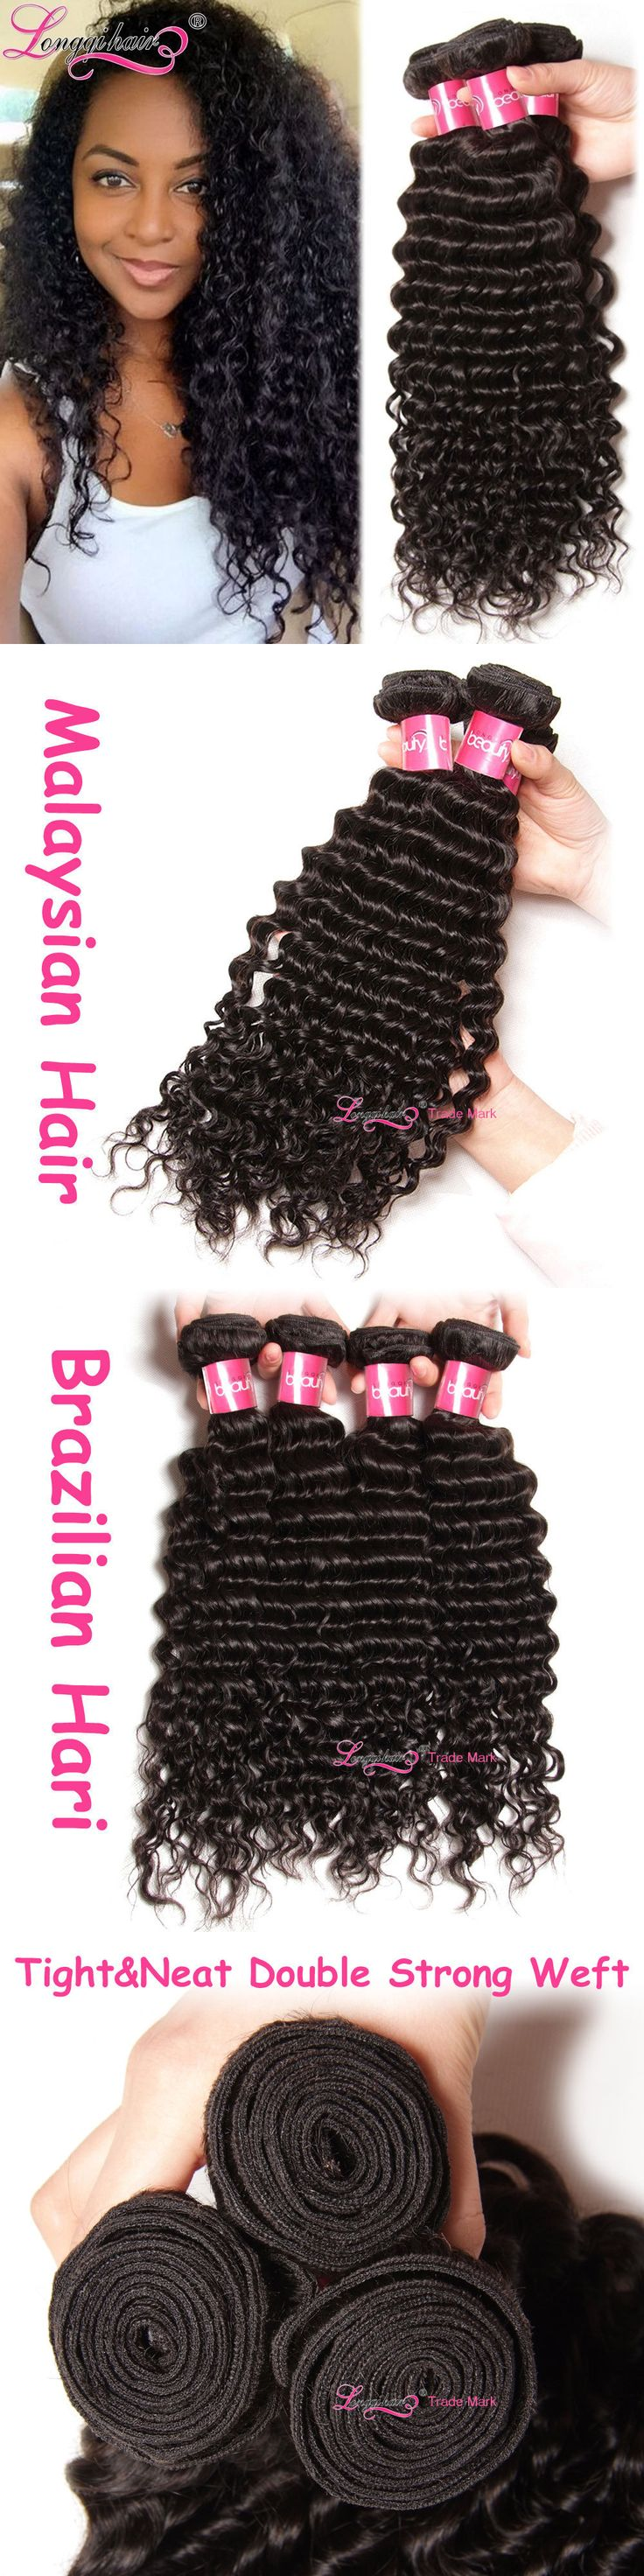 Hair Extensions: Malaysian Deep Wave Hair Weaves 3Bundles Unprocessed Curly Human Hair Extensions BUY IT NOW ONLY: $101.31